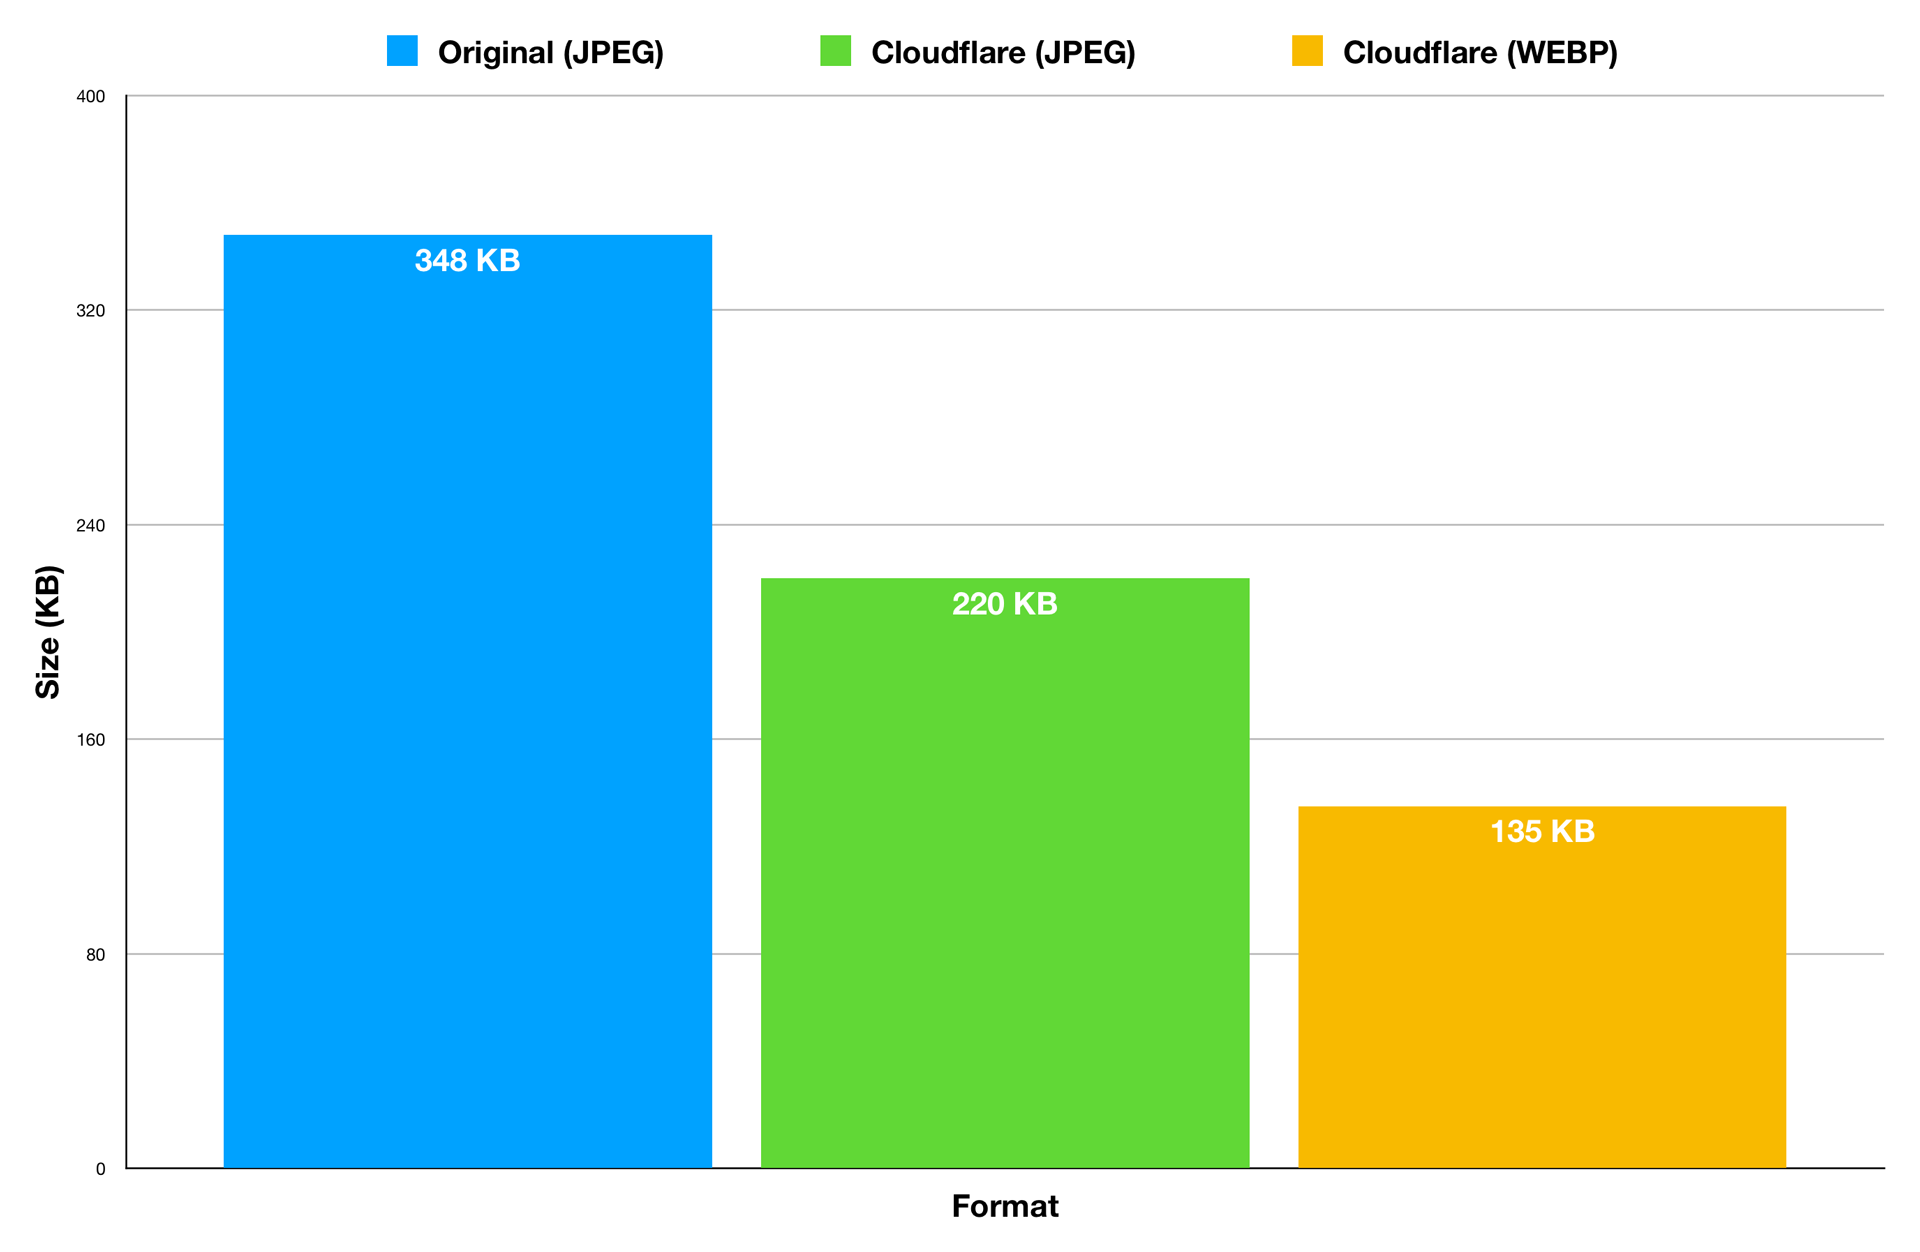 A comparison chart showing the performance benefits of Cloudflare image resizing.